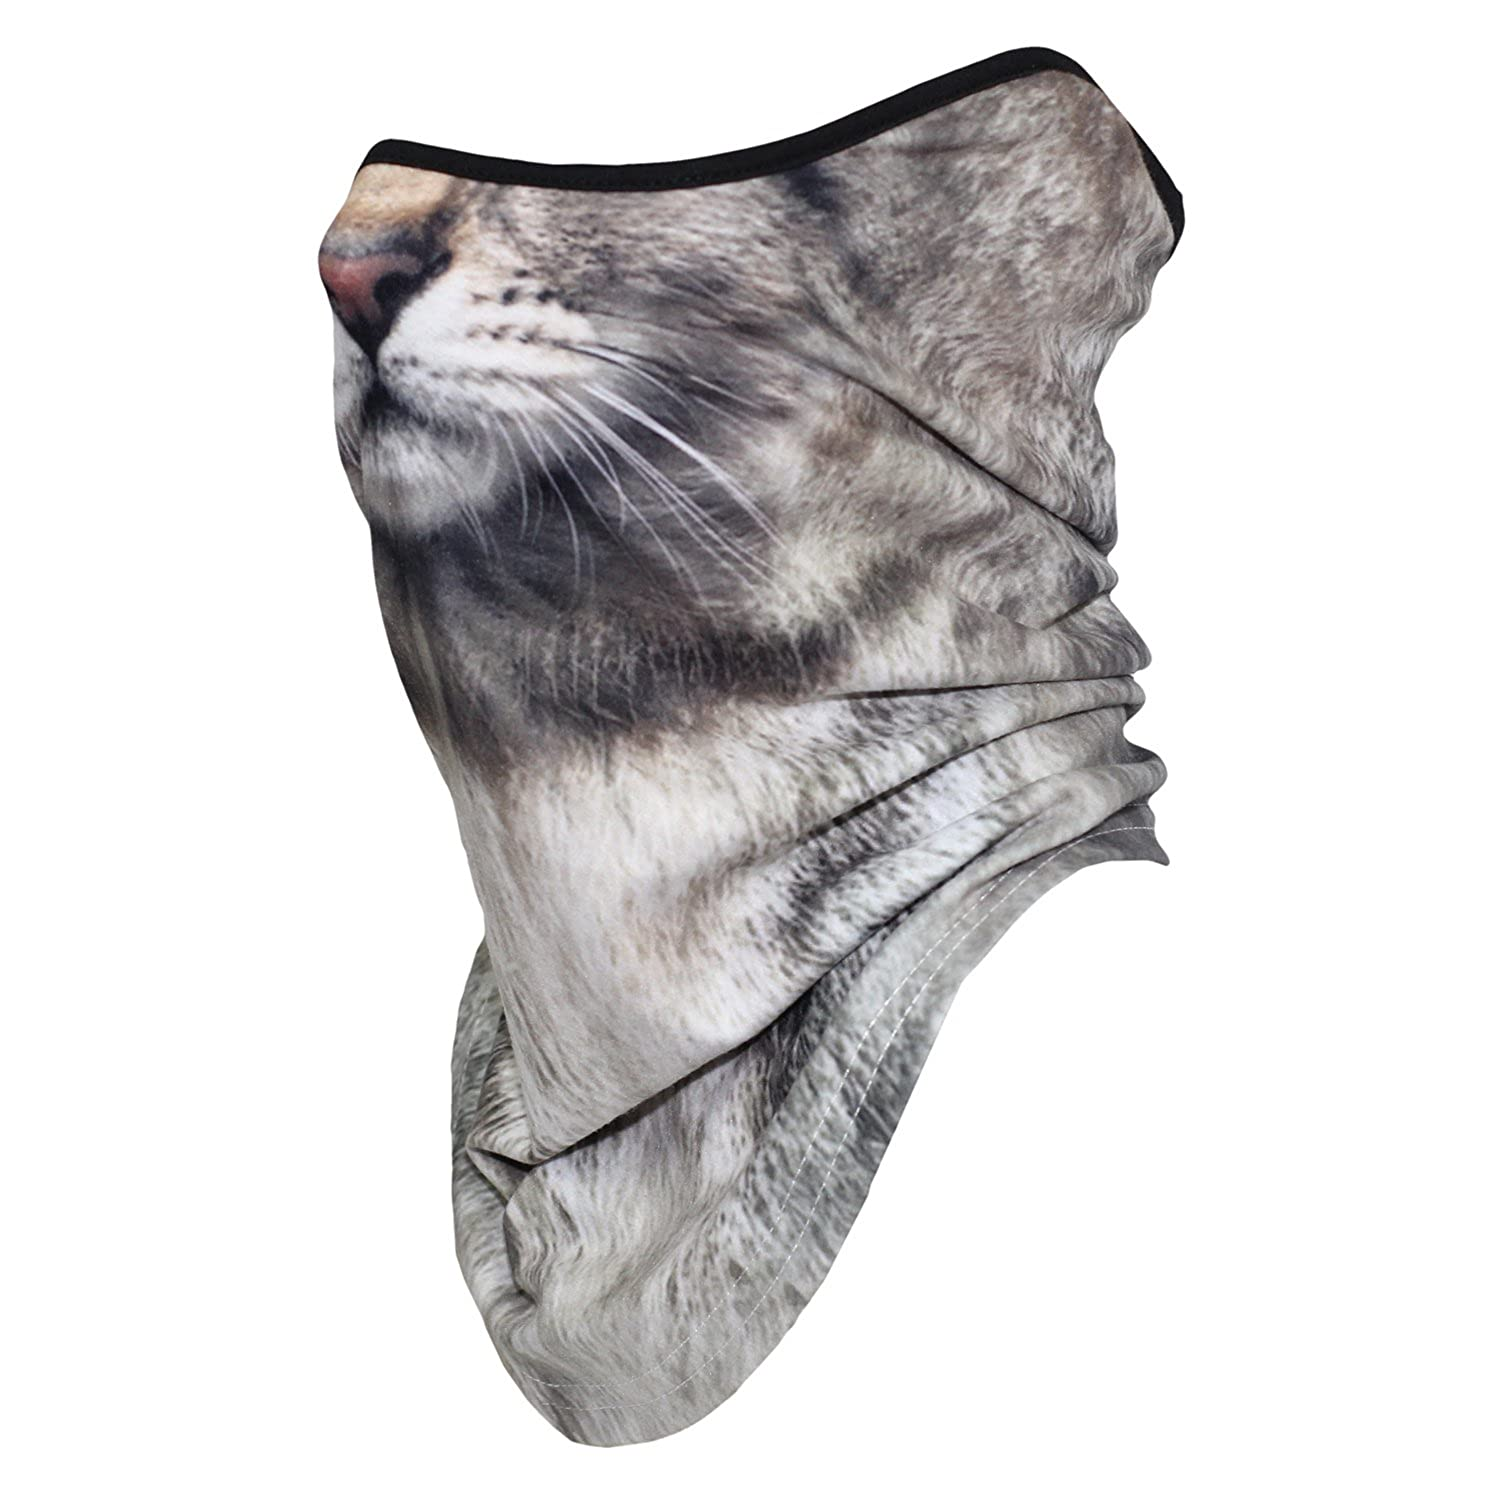 3D Animal Half Face Mask Scarf Neck Gaiters for Motorcycle Cycling Skiing Halloween Party Cosplay